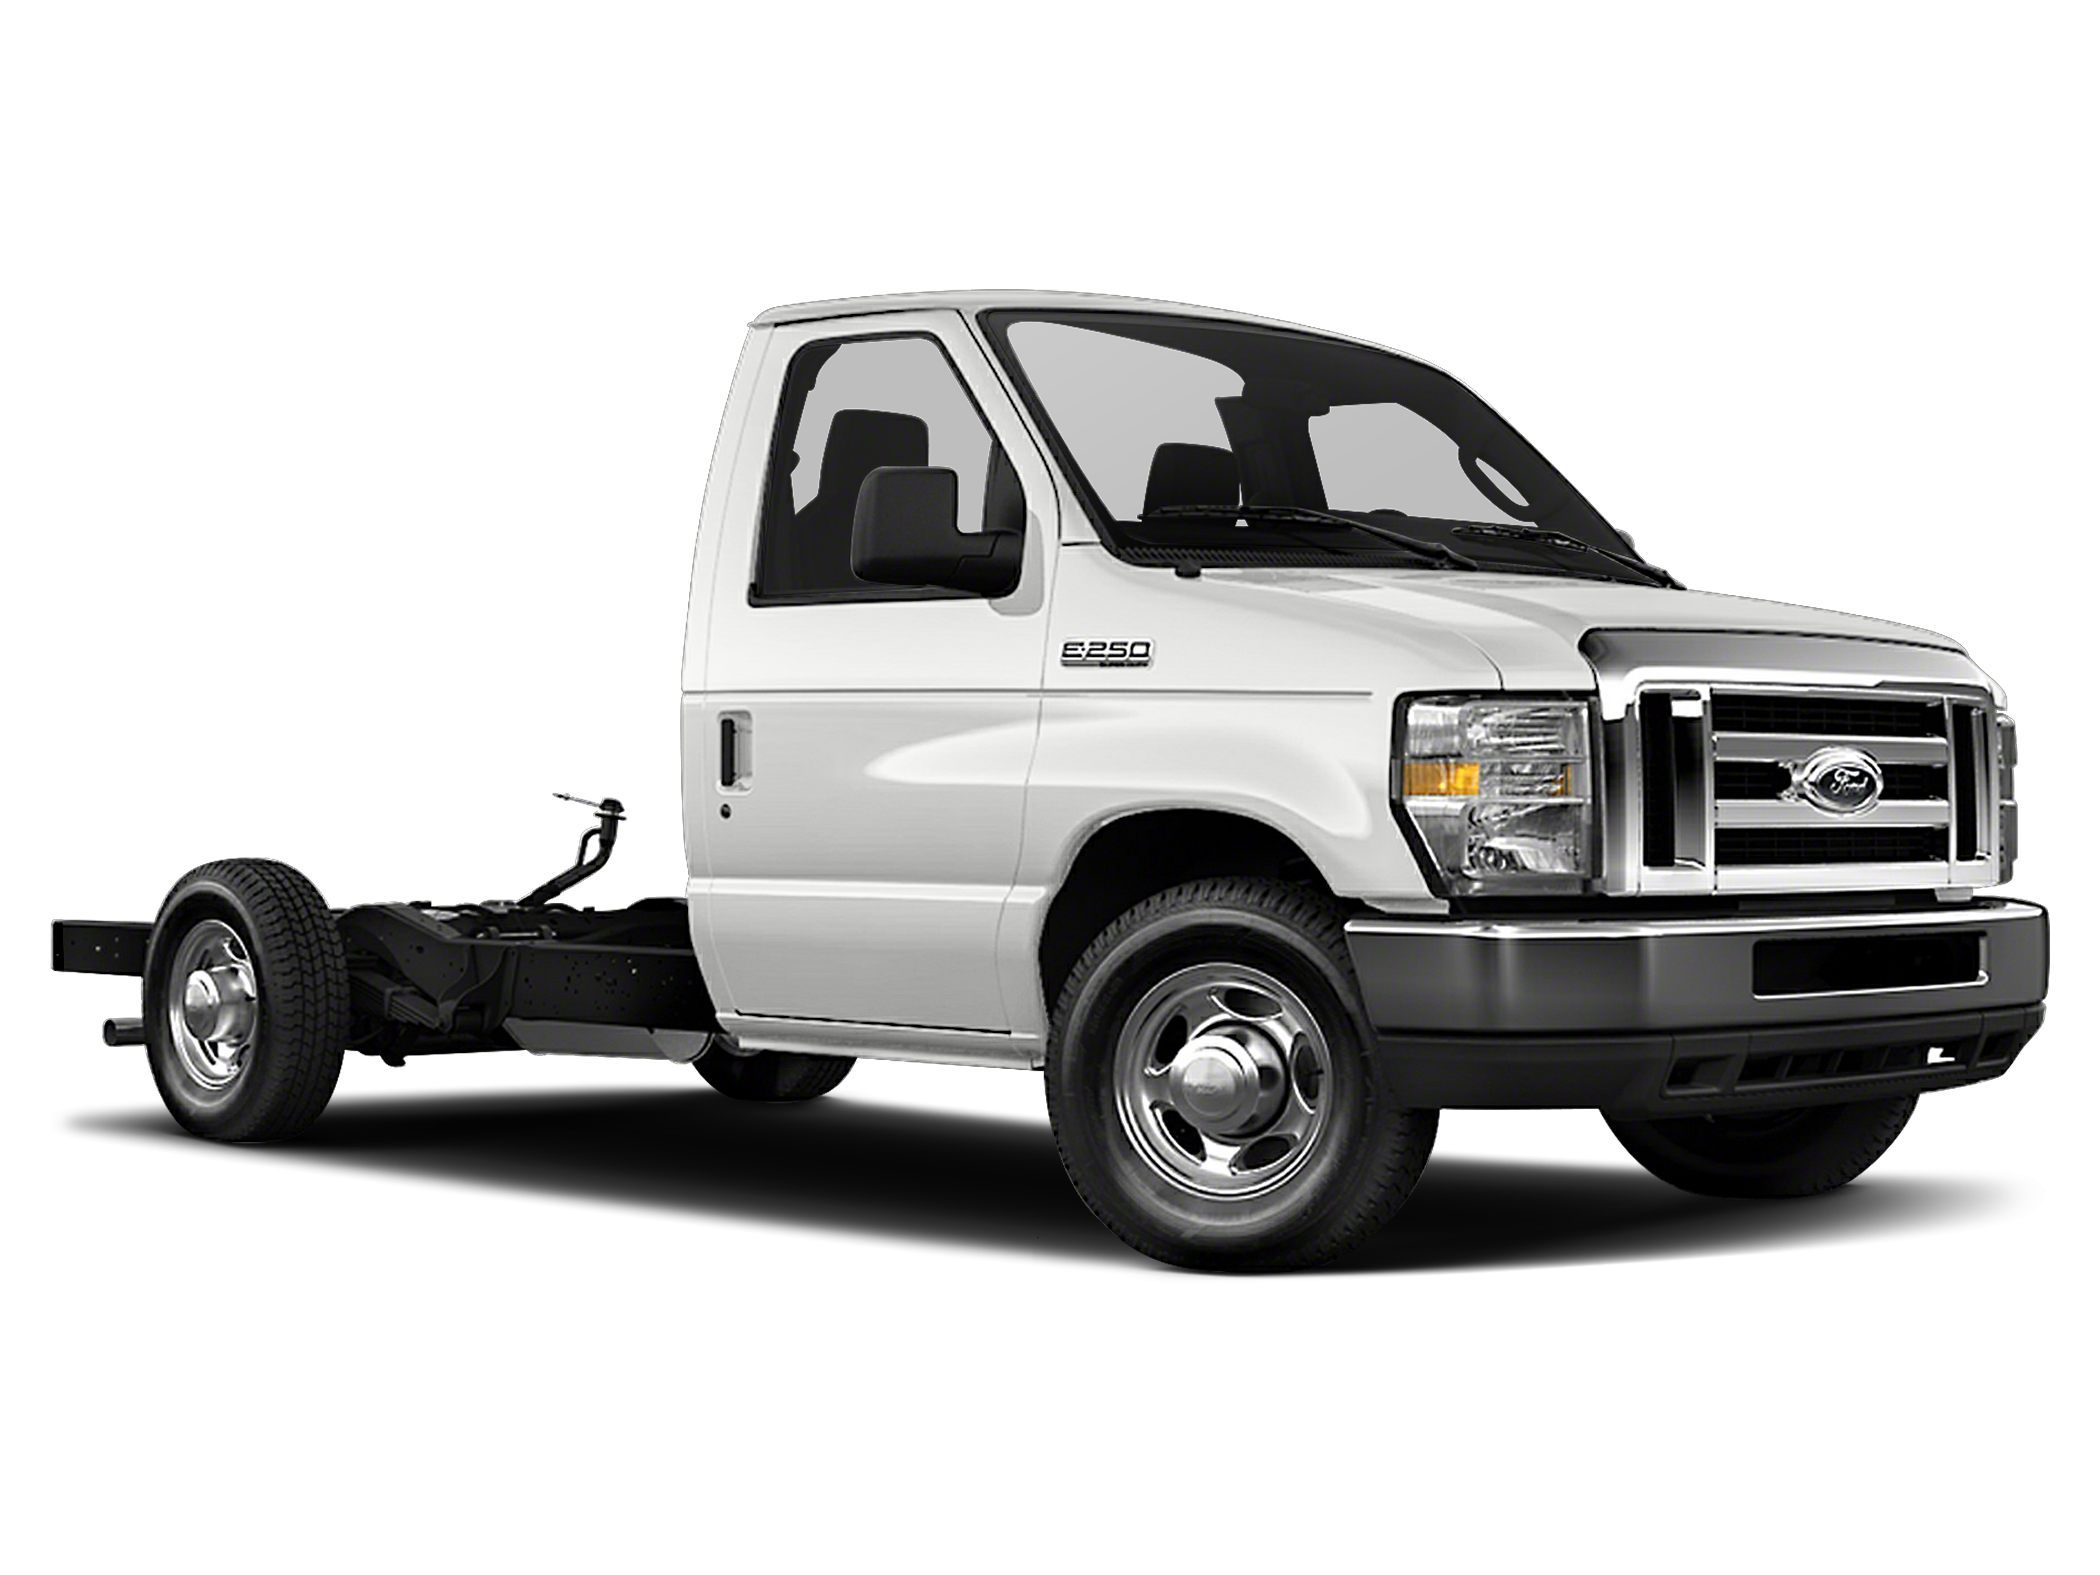 2019 Ford E-350 Cutaway Cab/Chassis